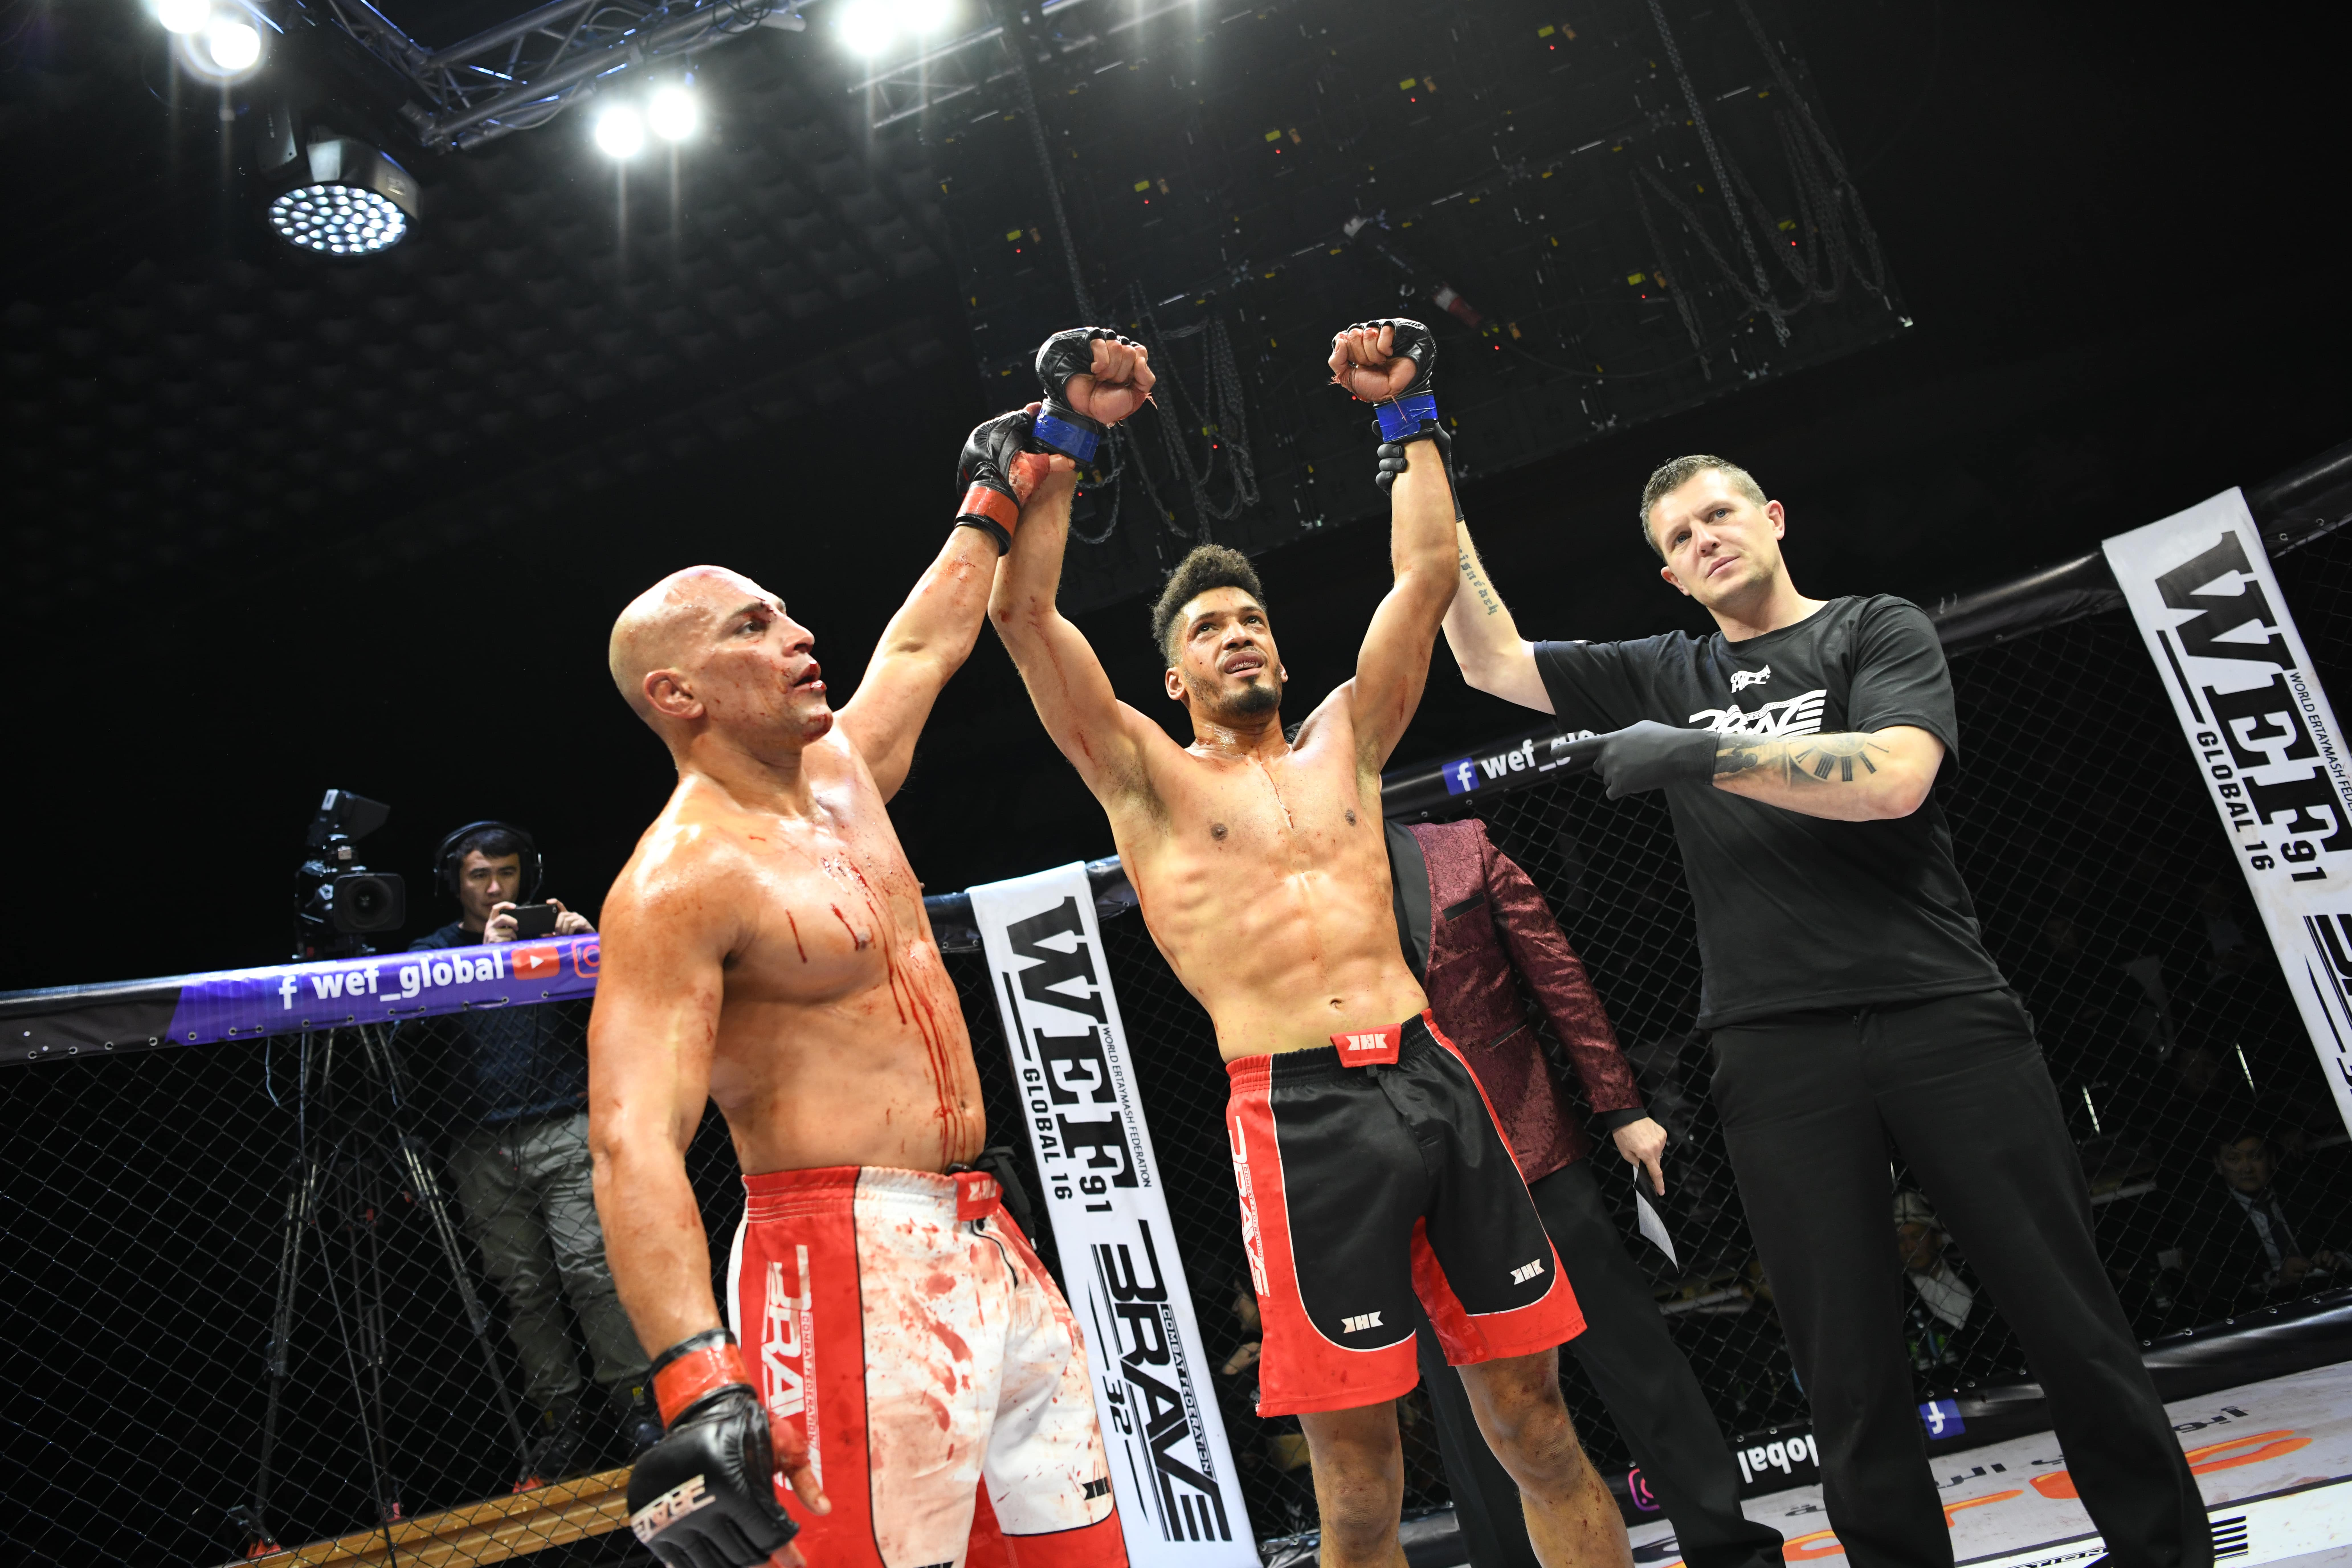 Booth dominates Hassan at sold-out BRAVE CF 32, calls out champ Al-Selawe -